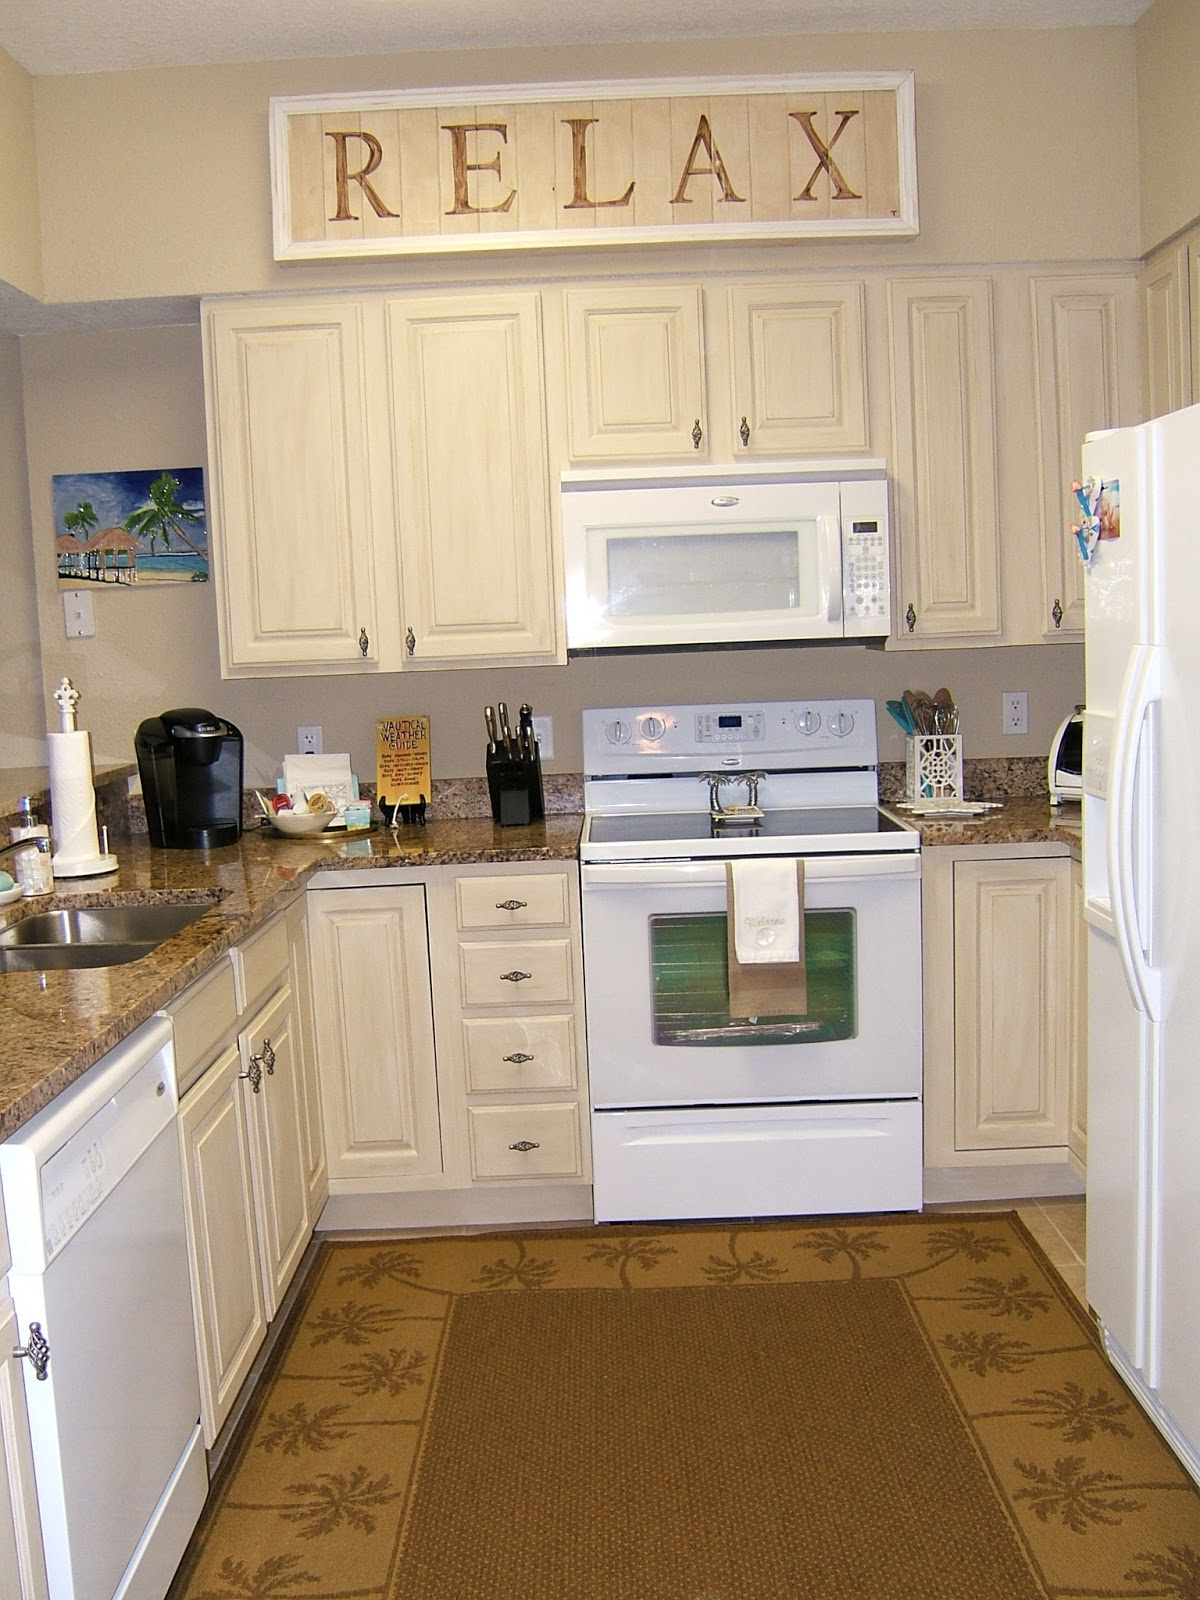 Kitchen rug ideas nay or yea homesfeed for Kitchen pics